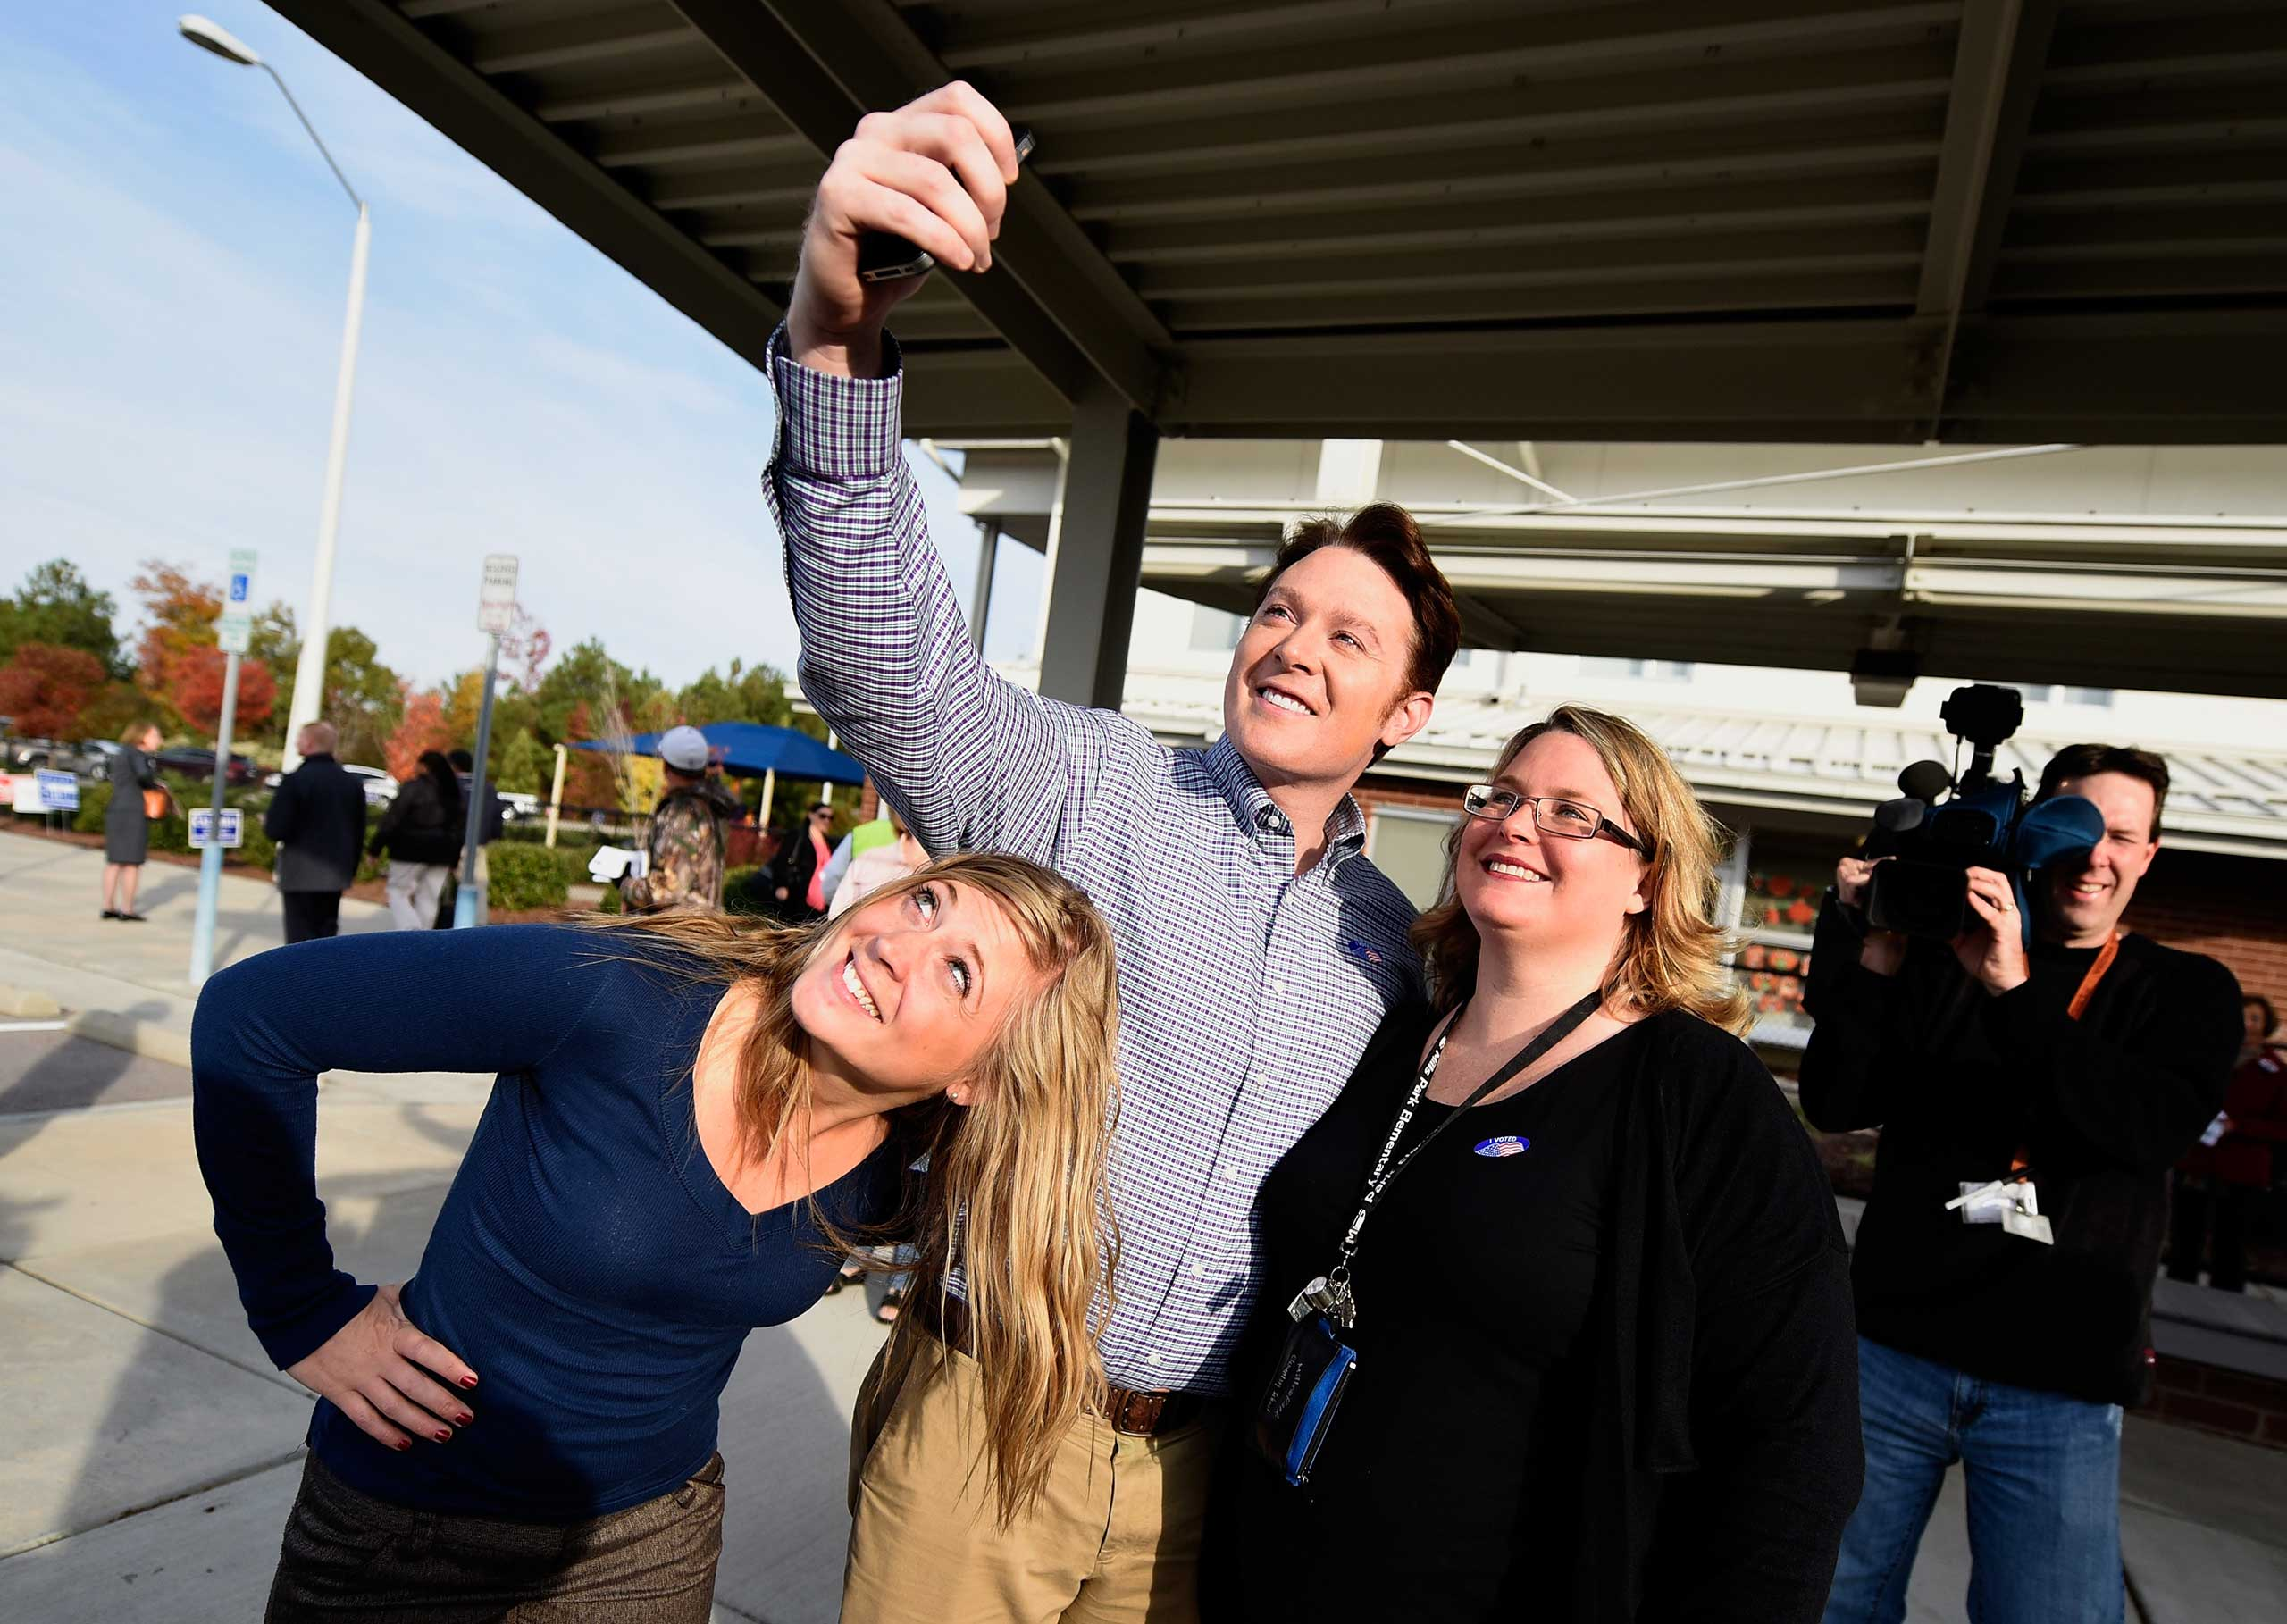 <b>Clay Aiken</b>, Democratic candidate for U.S. Congress in North Carolina's Second District, poses for a selfie with supporters after casting his vote in the midterm elections oat Mills Park Elementary School in Cary, N.C. on Nov. 4, 2014. Aiken was runner up on the second season of <i>American Idol</i>.